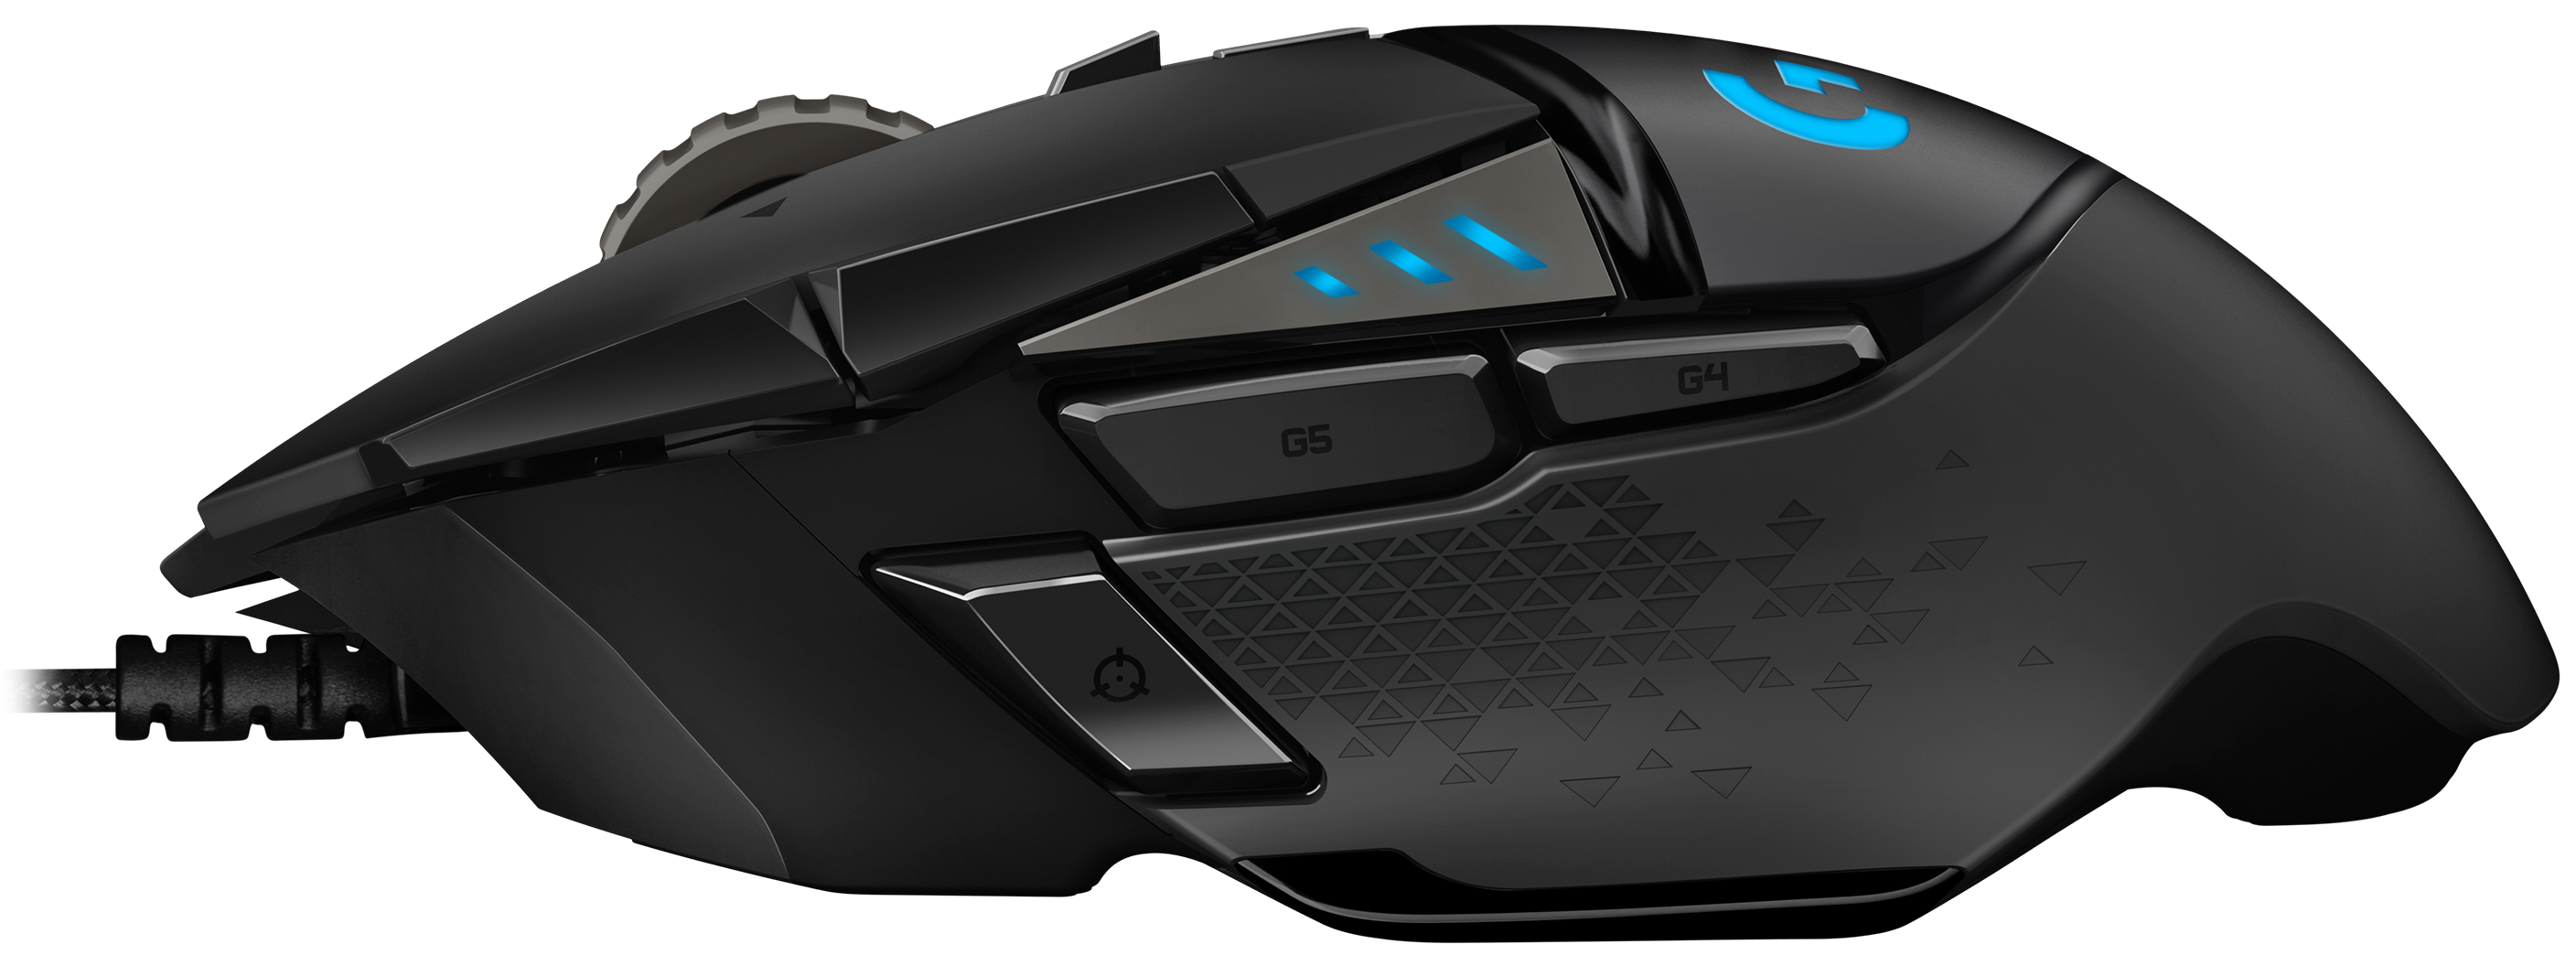 Logitech G502 Wireless Mouse Lightspeed Gaming Launched at $ 150